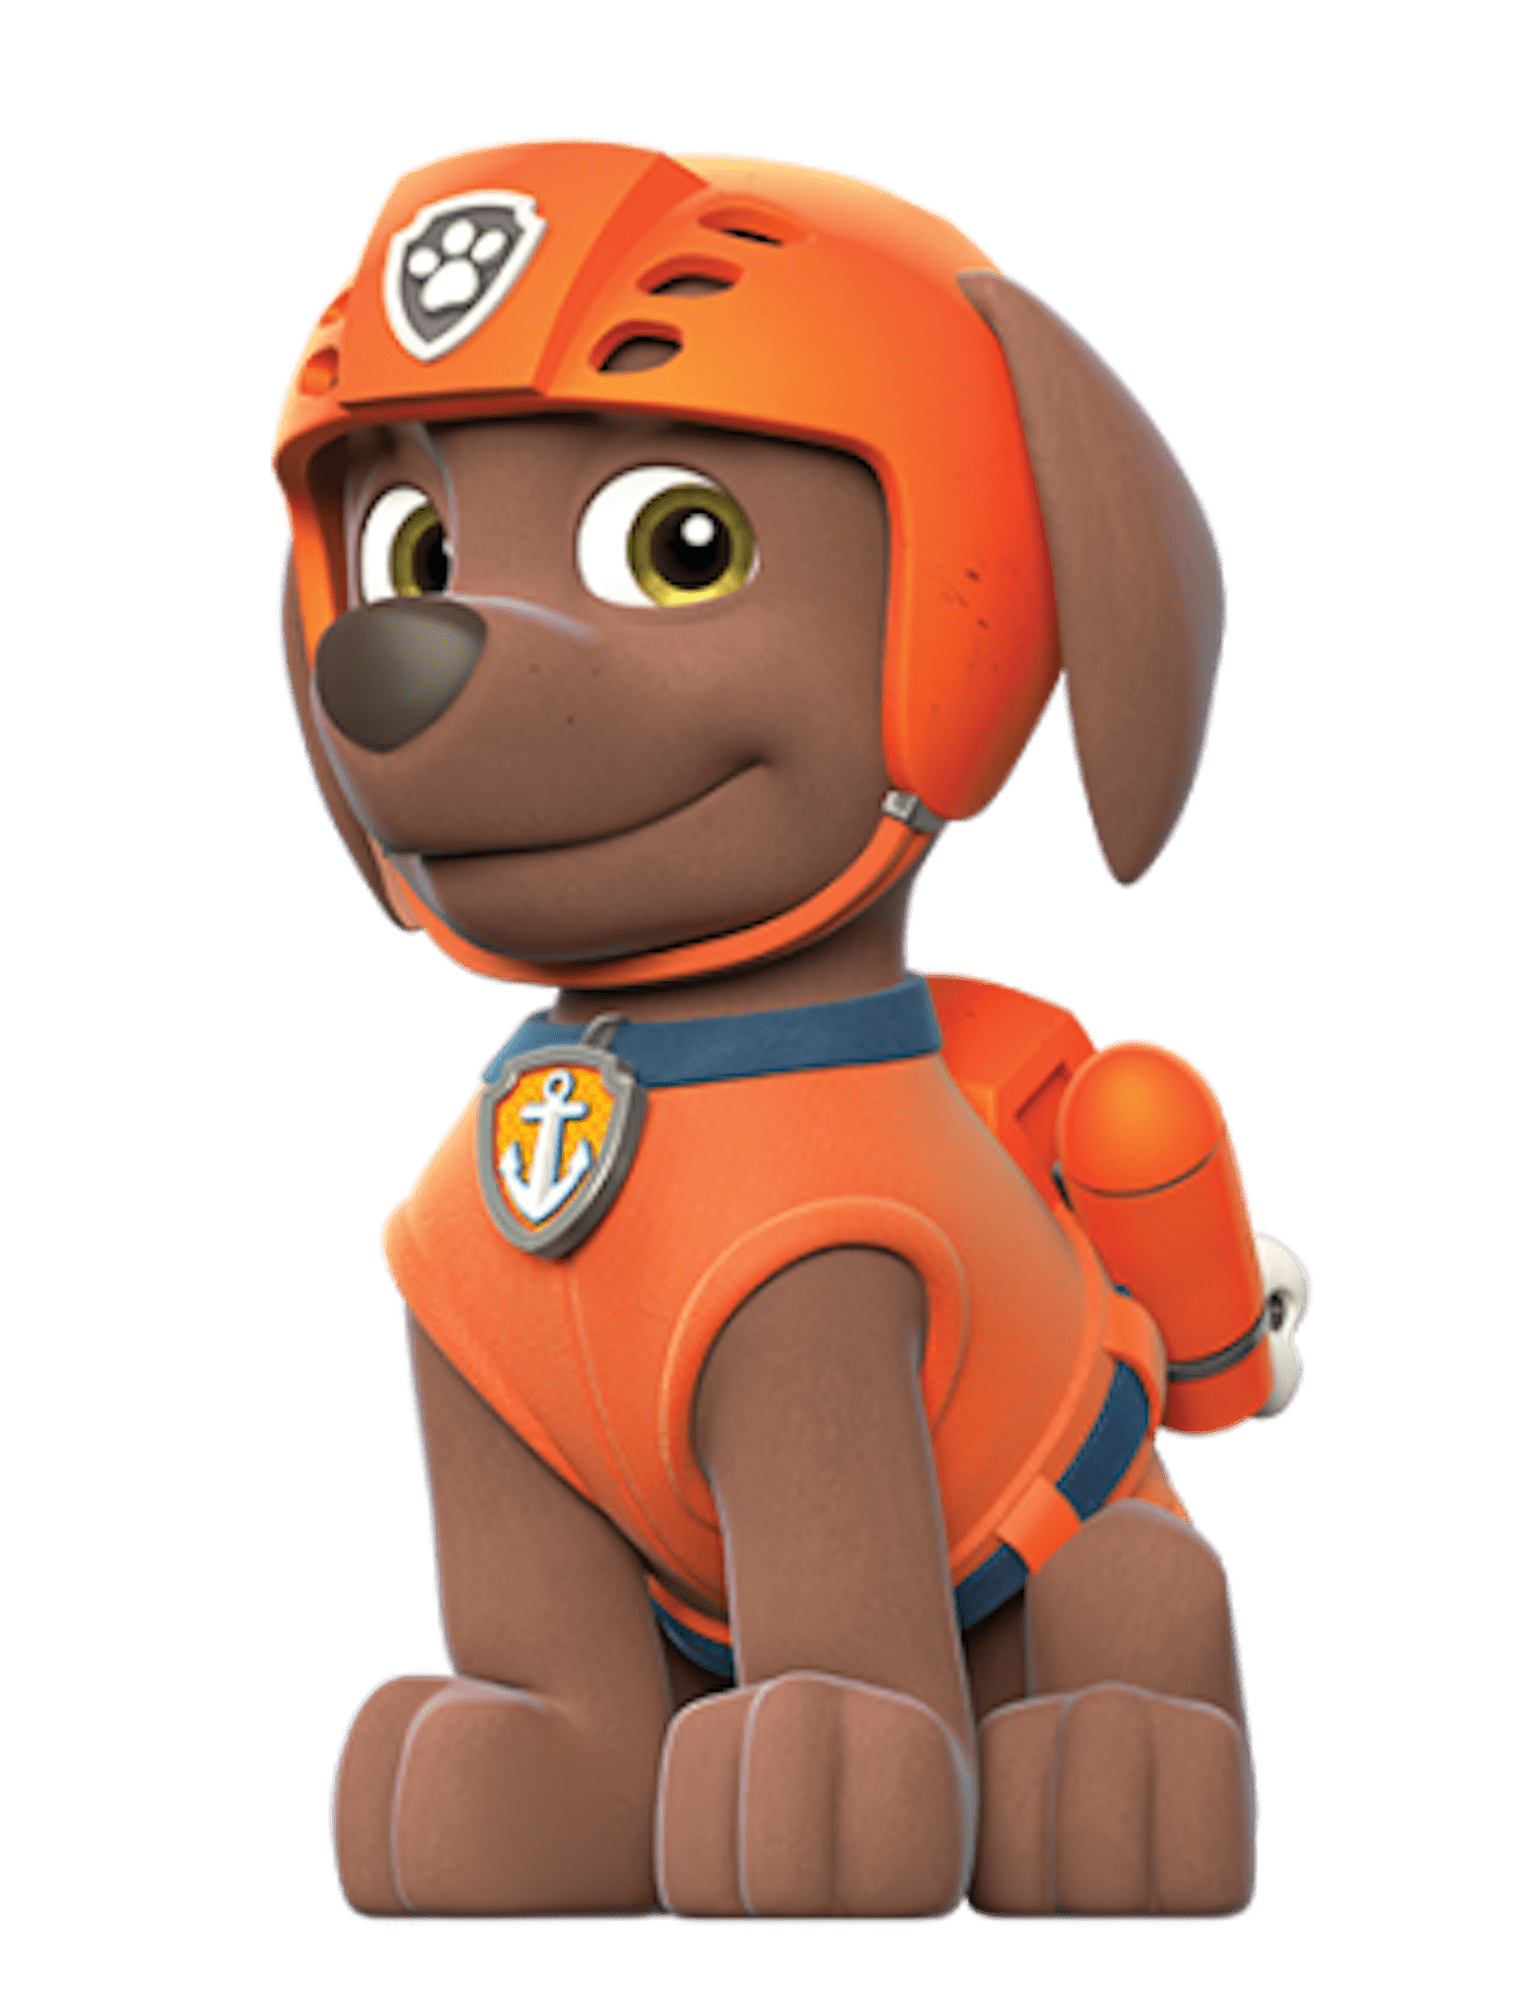 Paw patrol clipart png. Zuma is ready